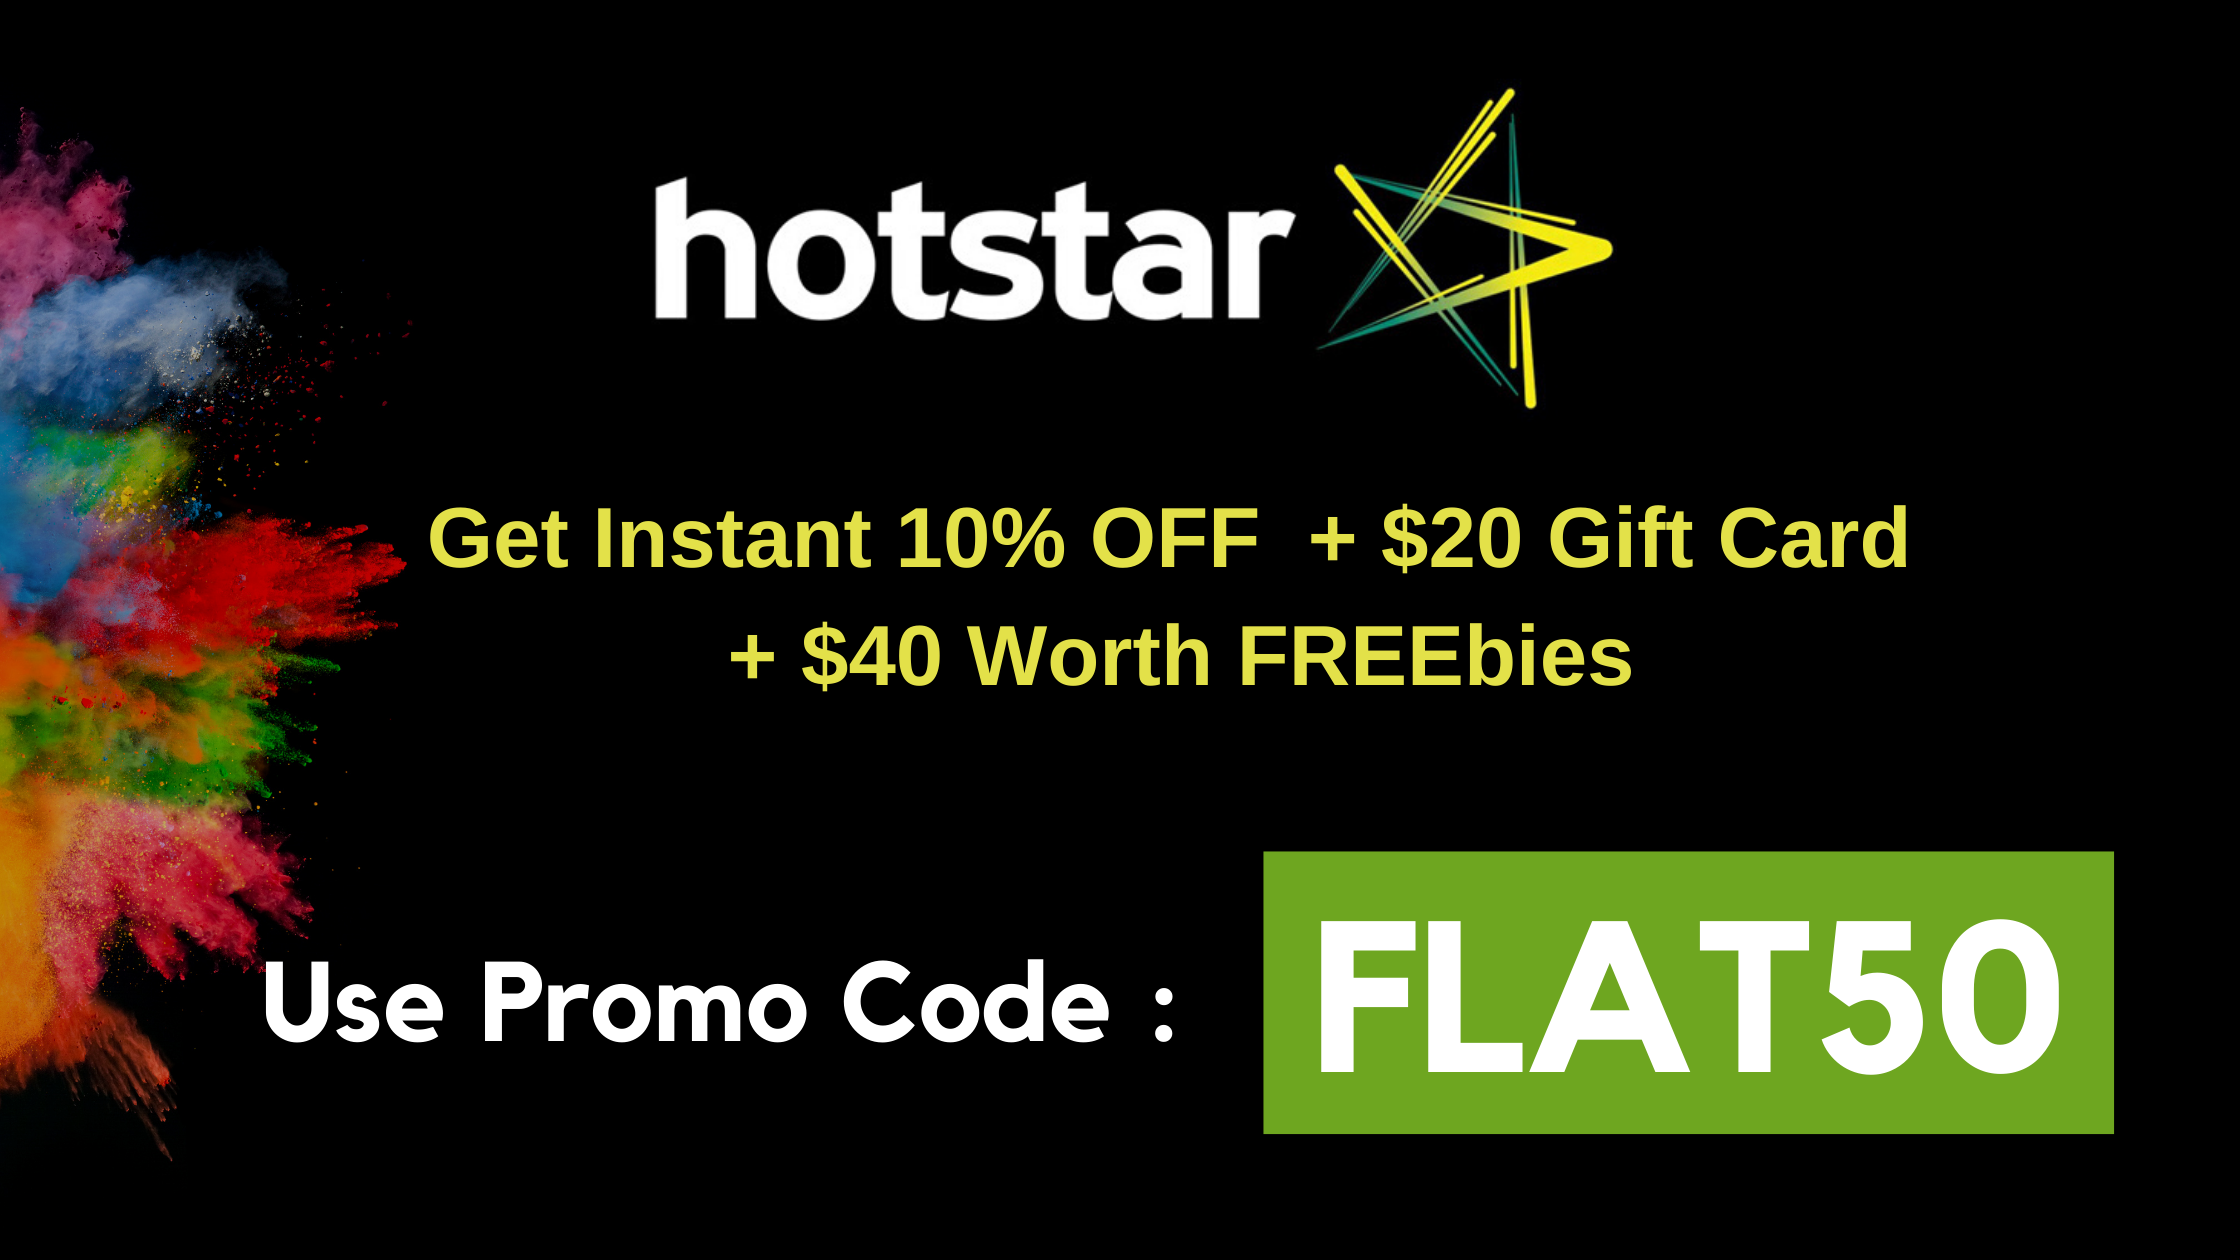 10% Hotstar Offer and $15 Gift Card-Annual Hotstar Subscription Promo Code:FLAT50